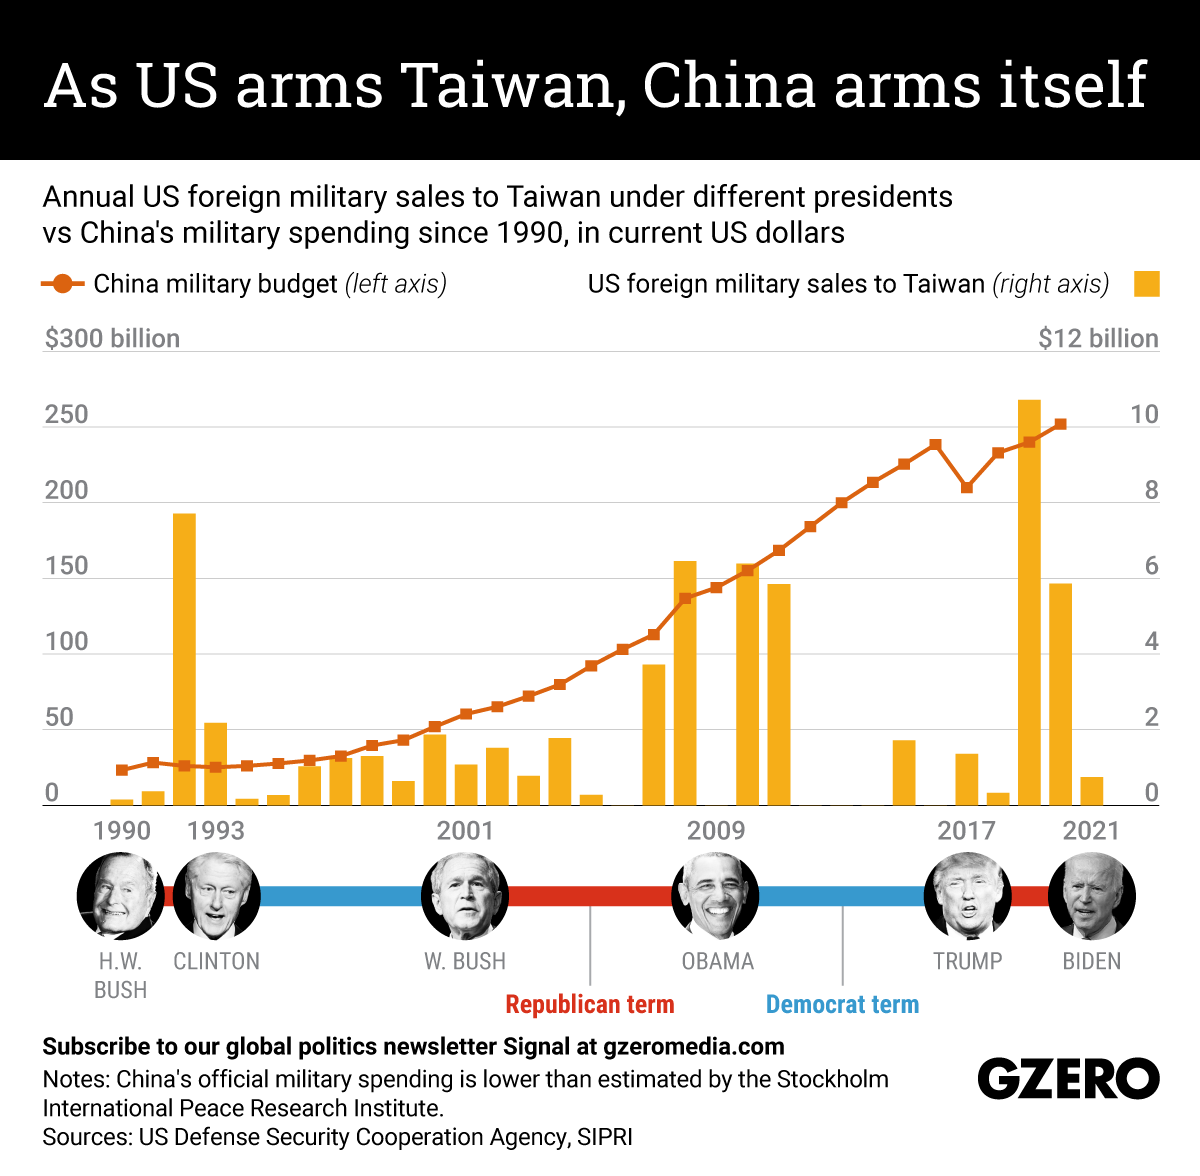 The Graphic Truth: As US arms Taiwan, China arms itself